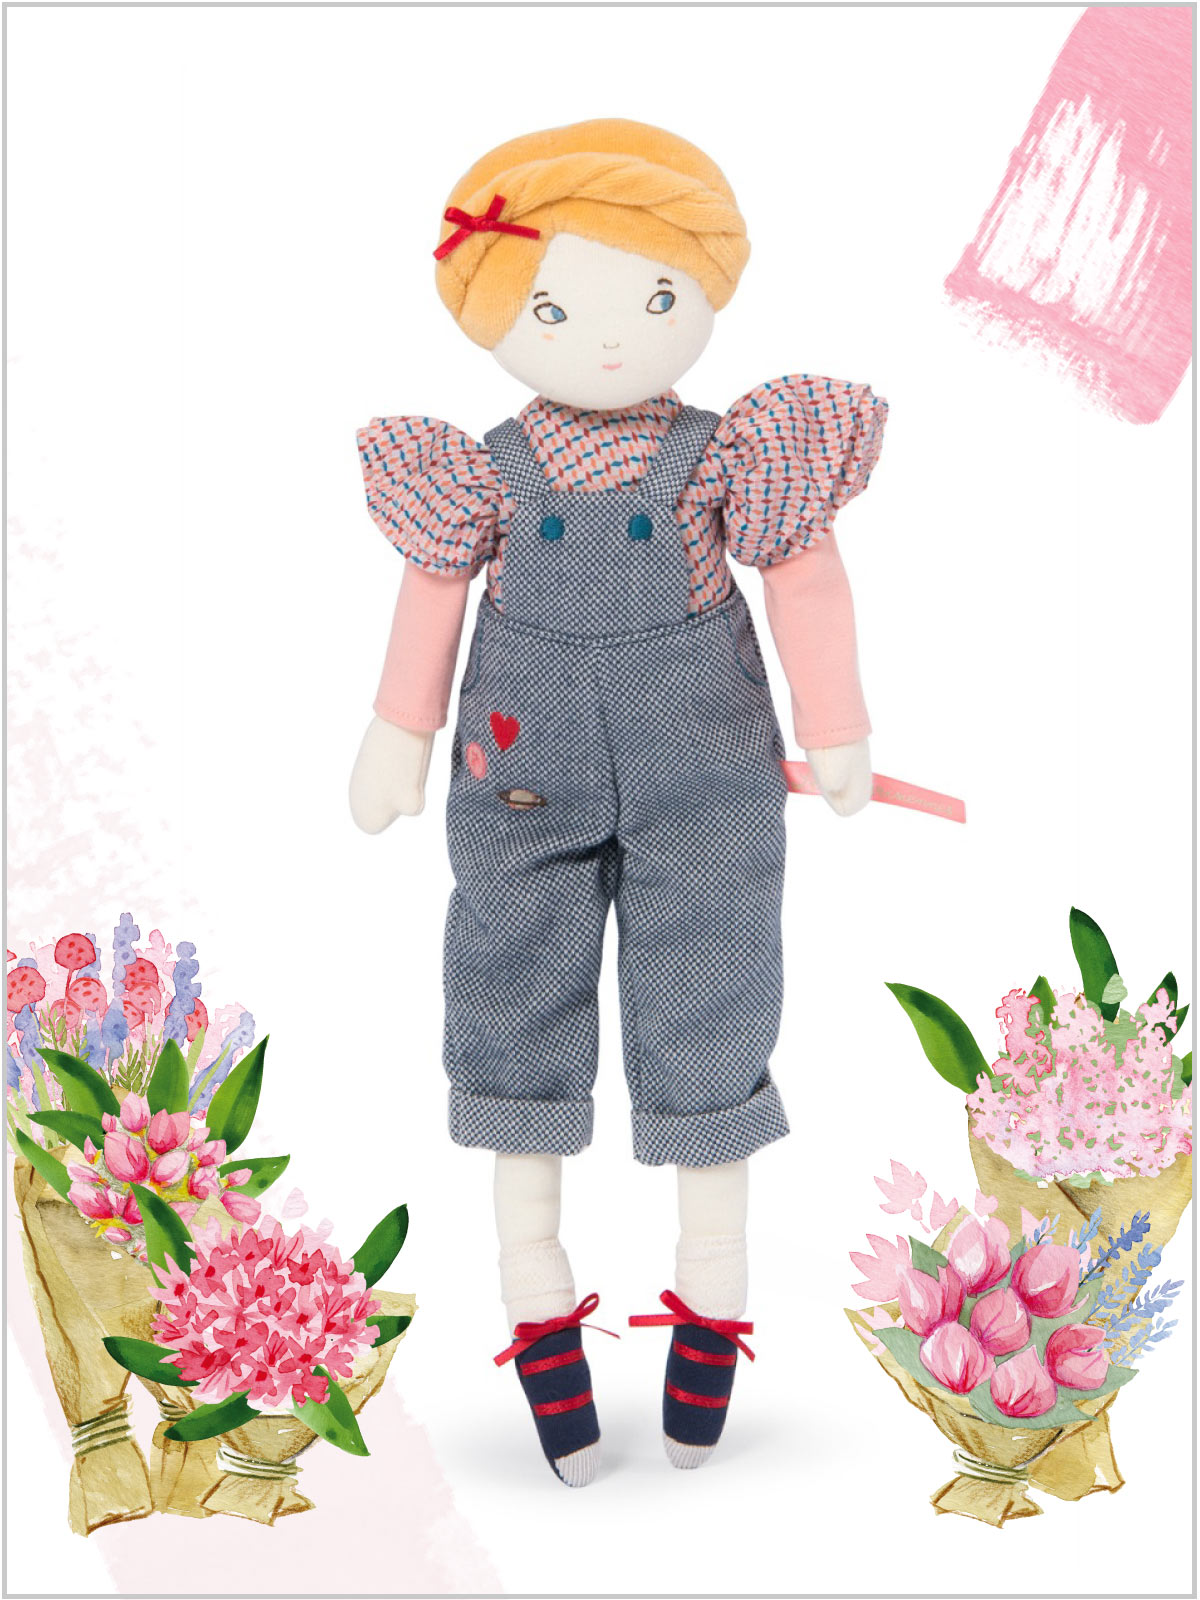 frederickandsophie-kids-toys-moulin-roty-les_parisiennes_Eglantine_doll